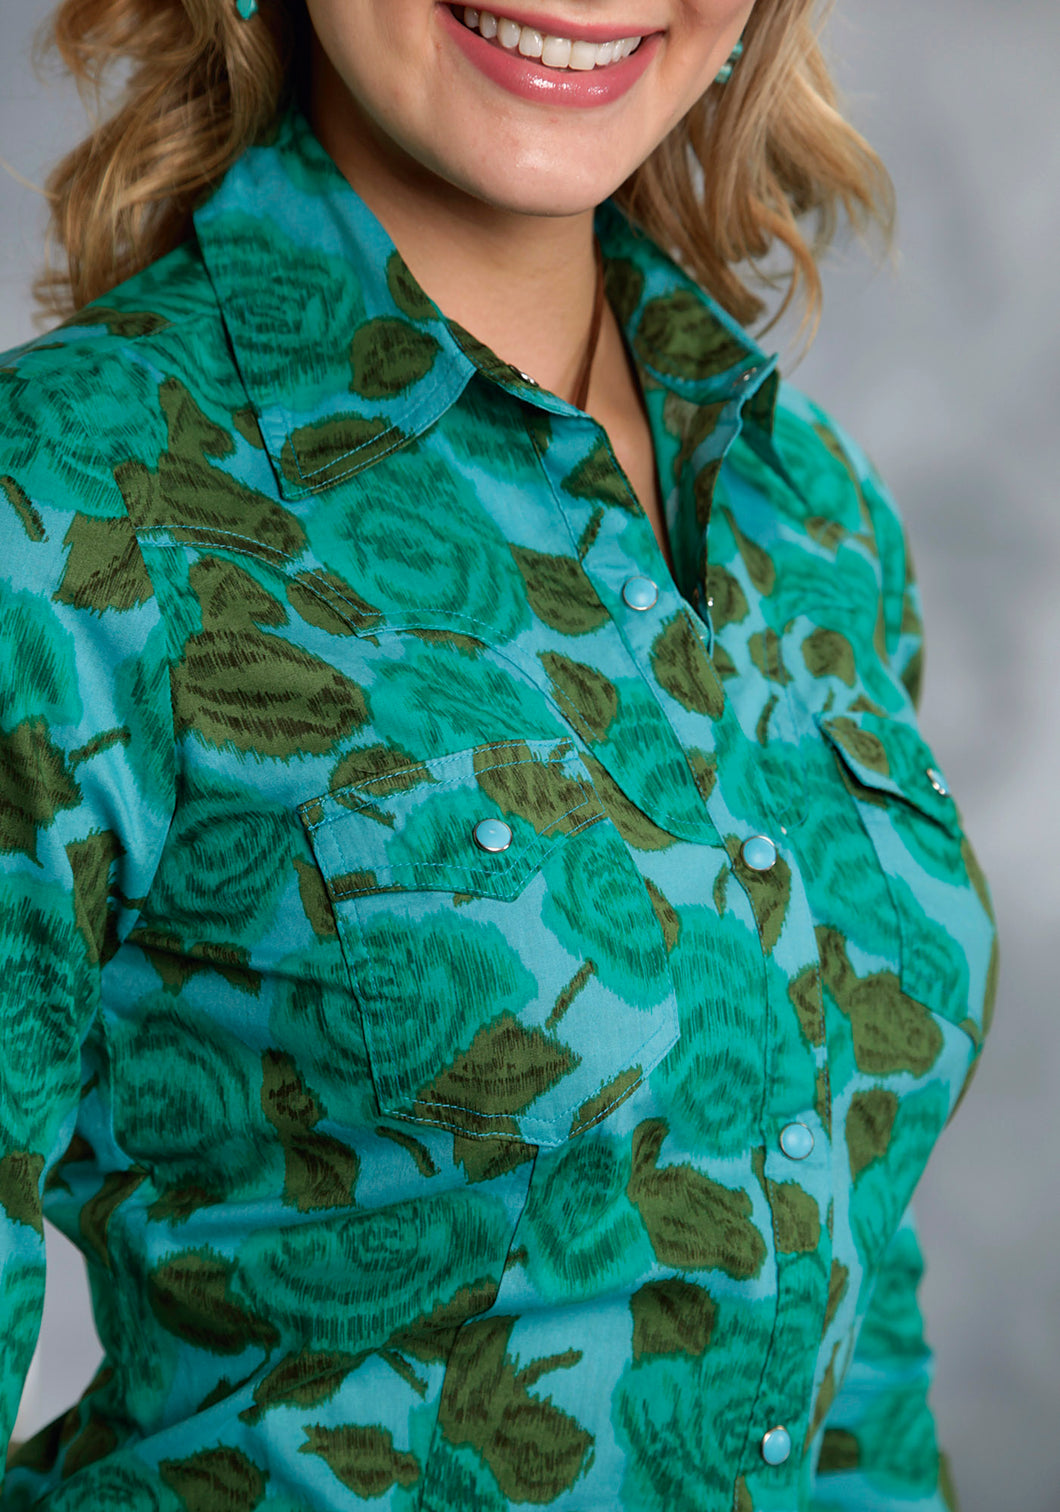 Five Star- Emerald Forest 5star Ladies Long Sleeve Shirt 9385 Emerald Floral Print Shirt